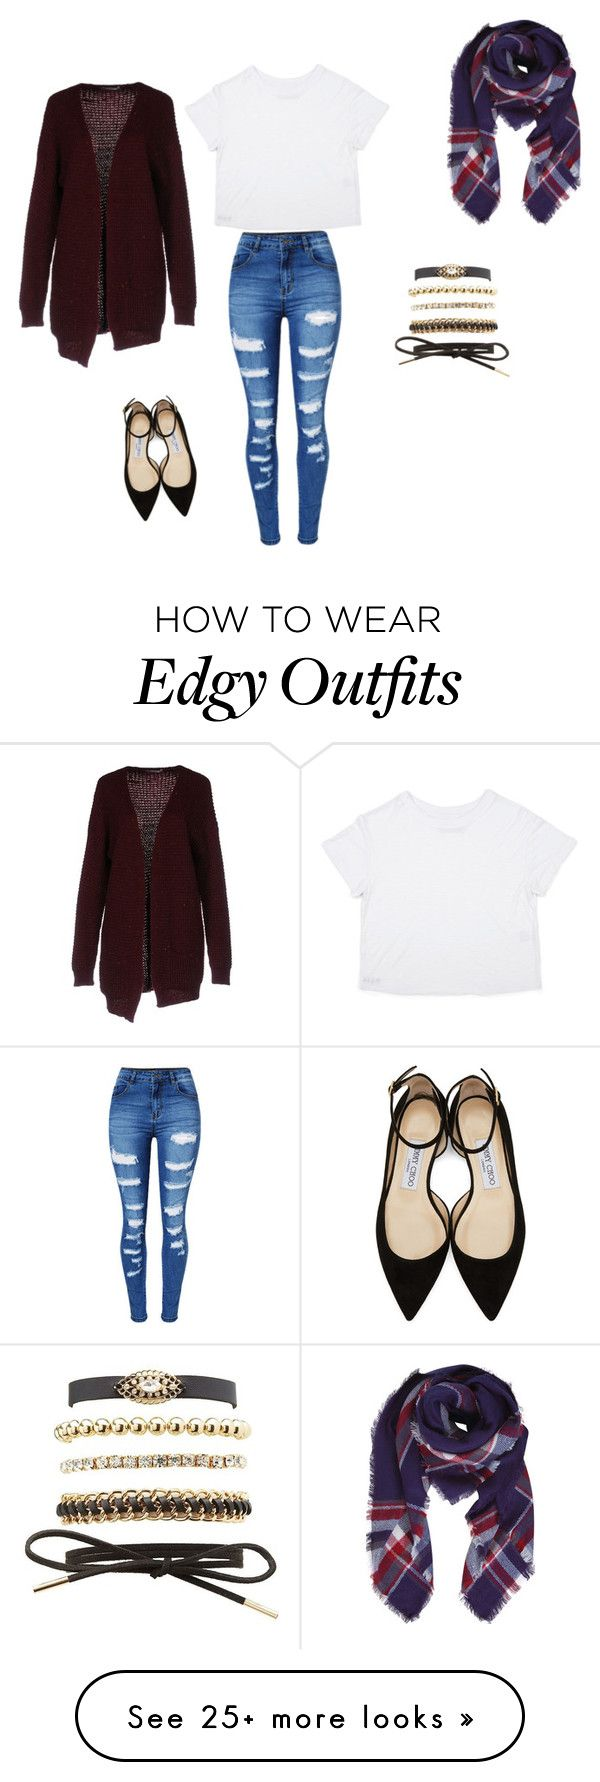 257 best images about Edgy Outfits on Pinterest | Alexander McQueen Edgy look and Topshop